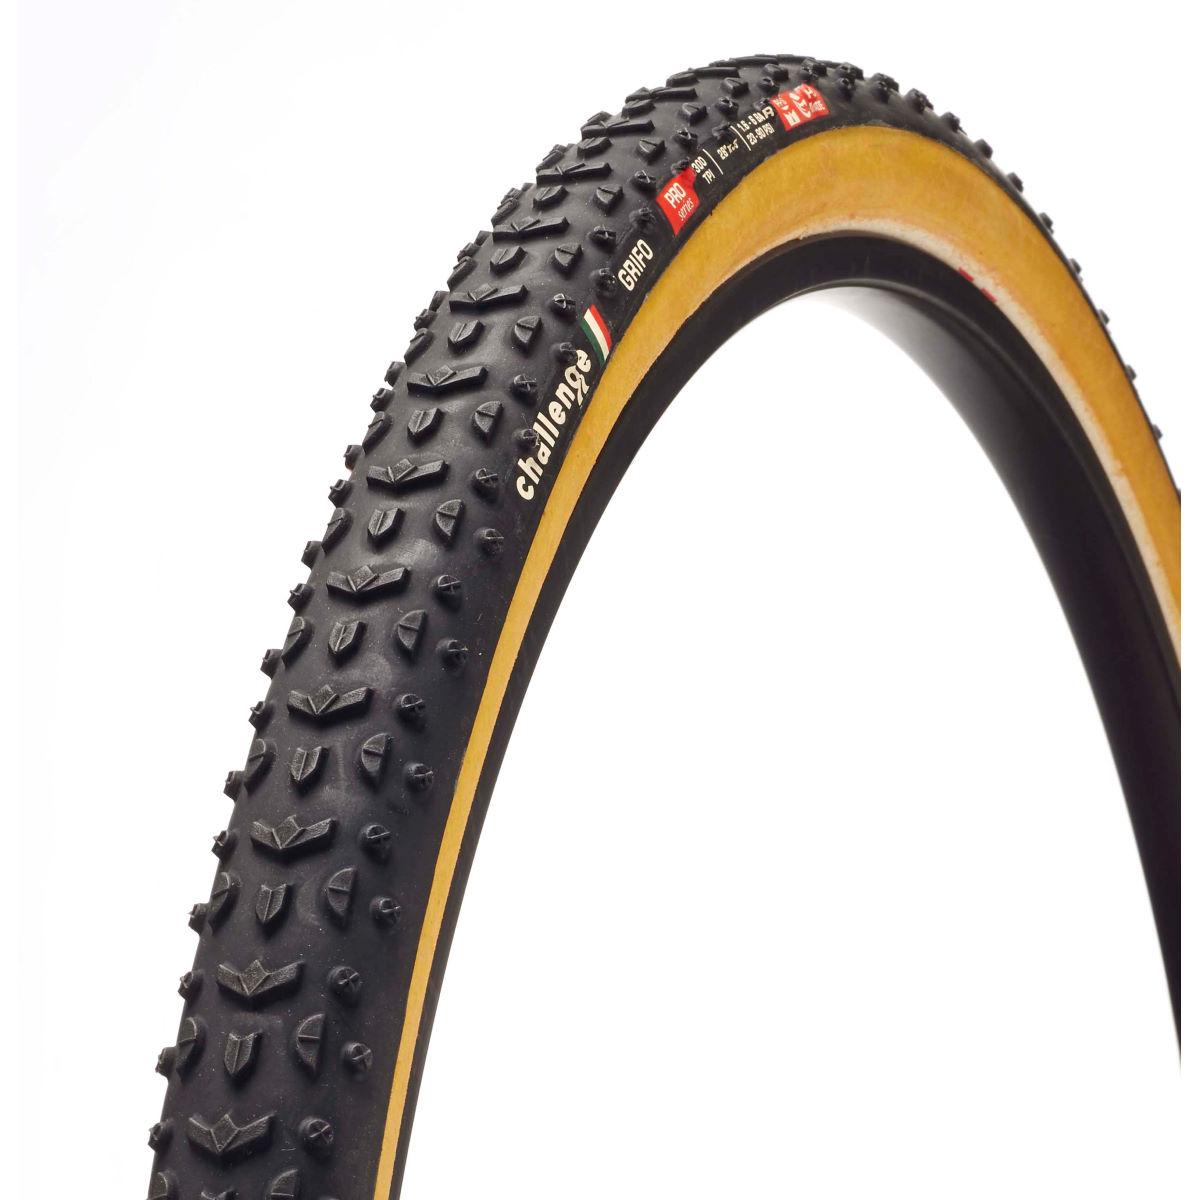 Pneu/Boyau de cyclo-cross Challenge Grifo 33 - 33mm 700c Black/Brown